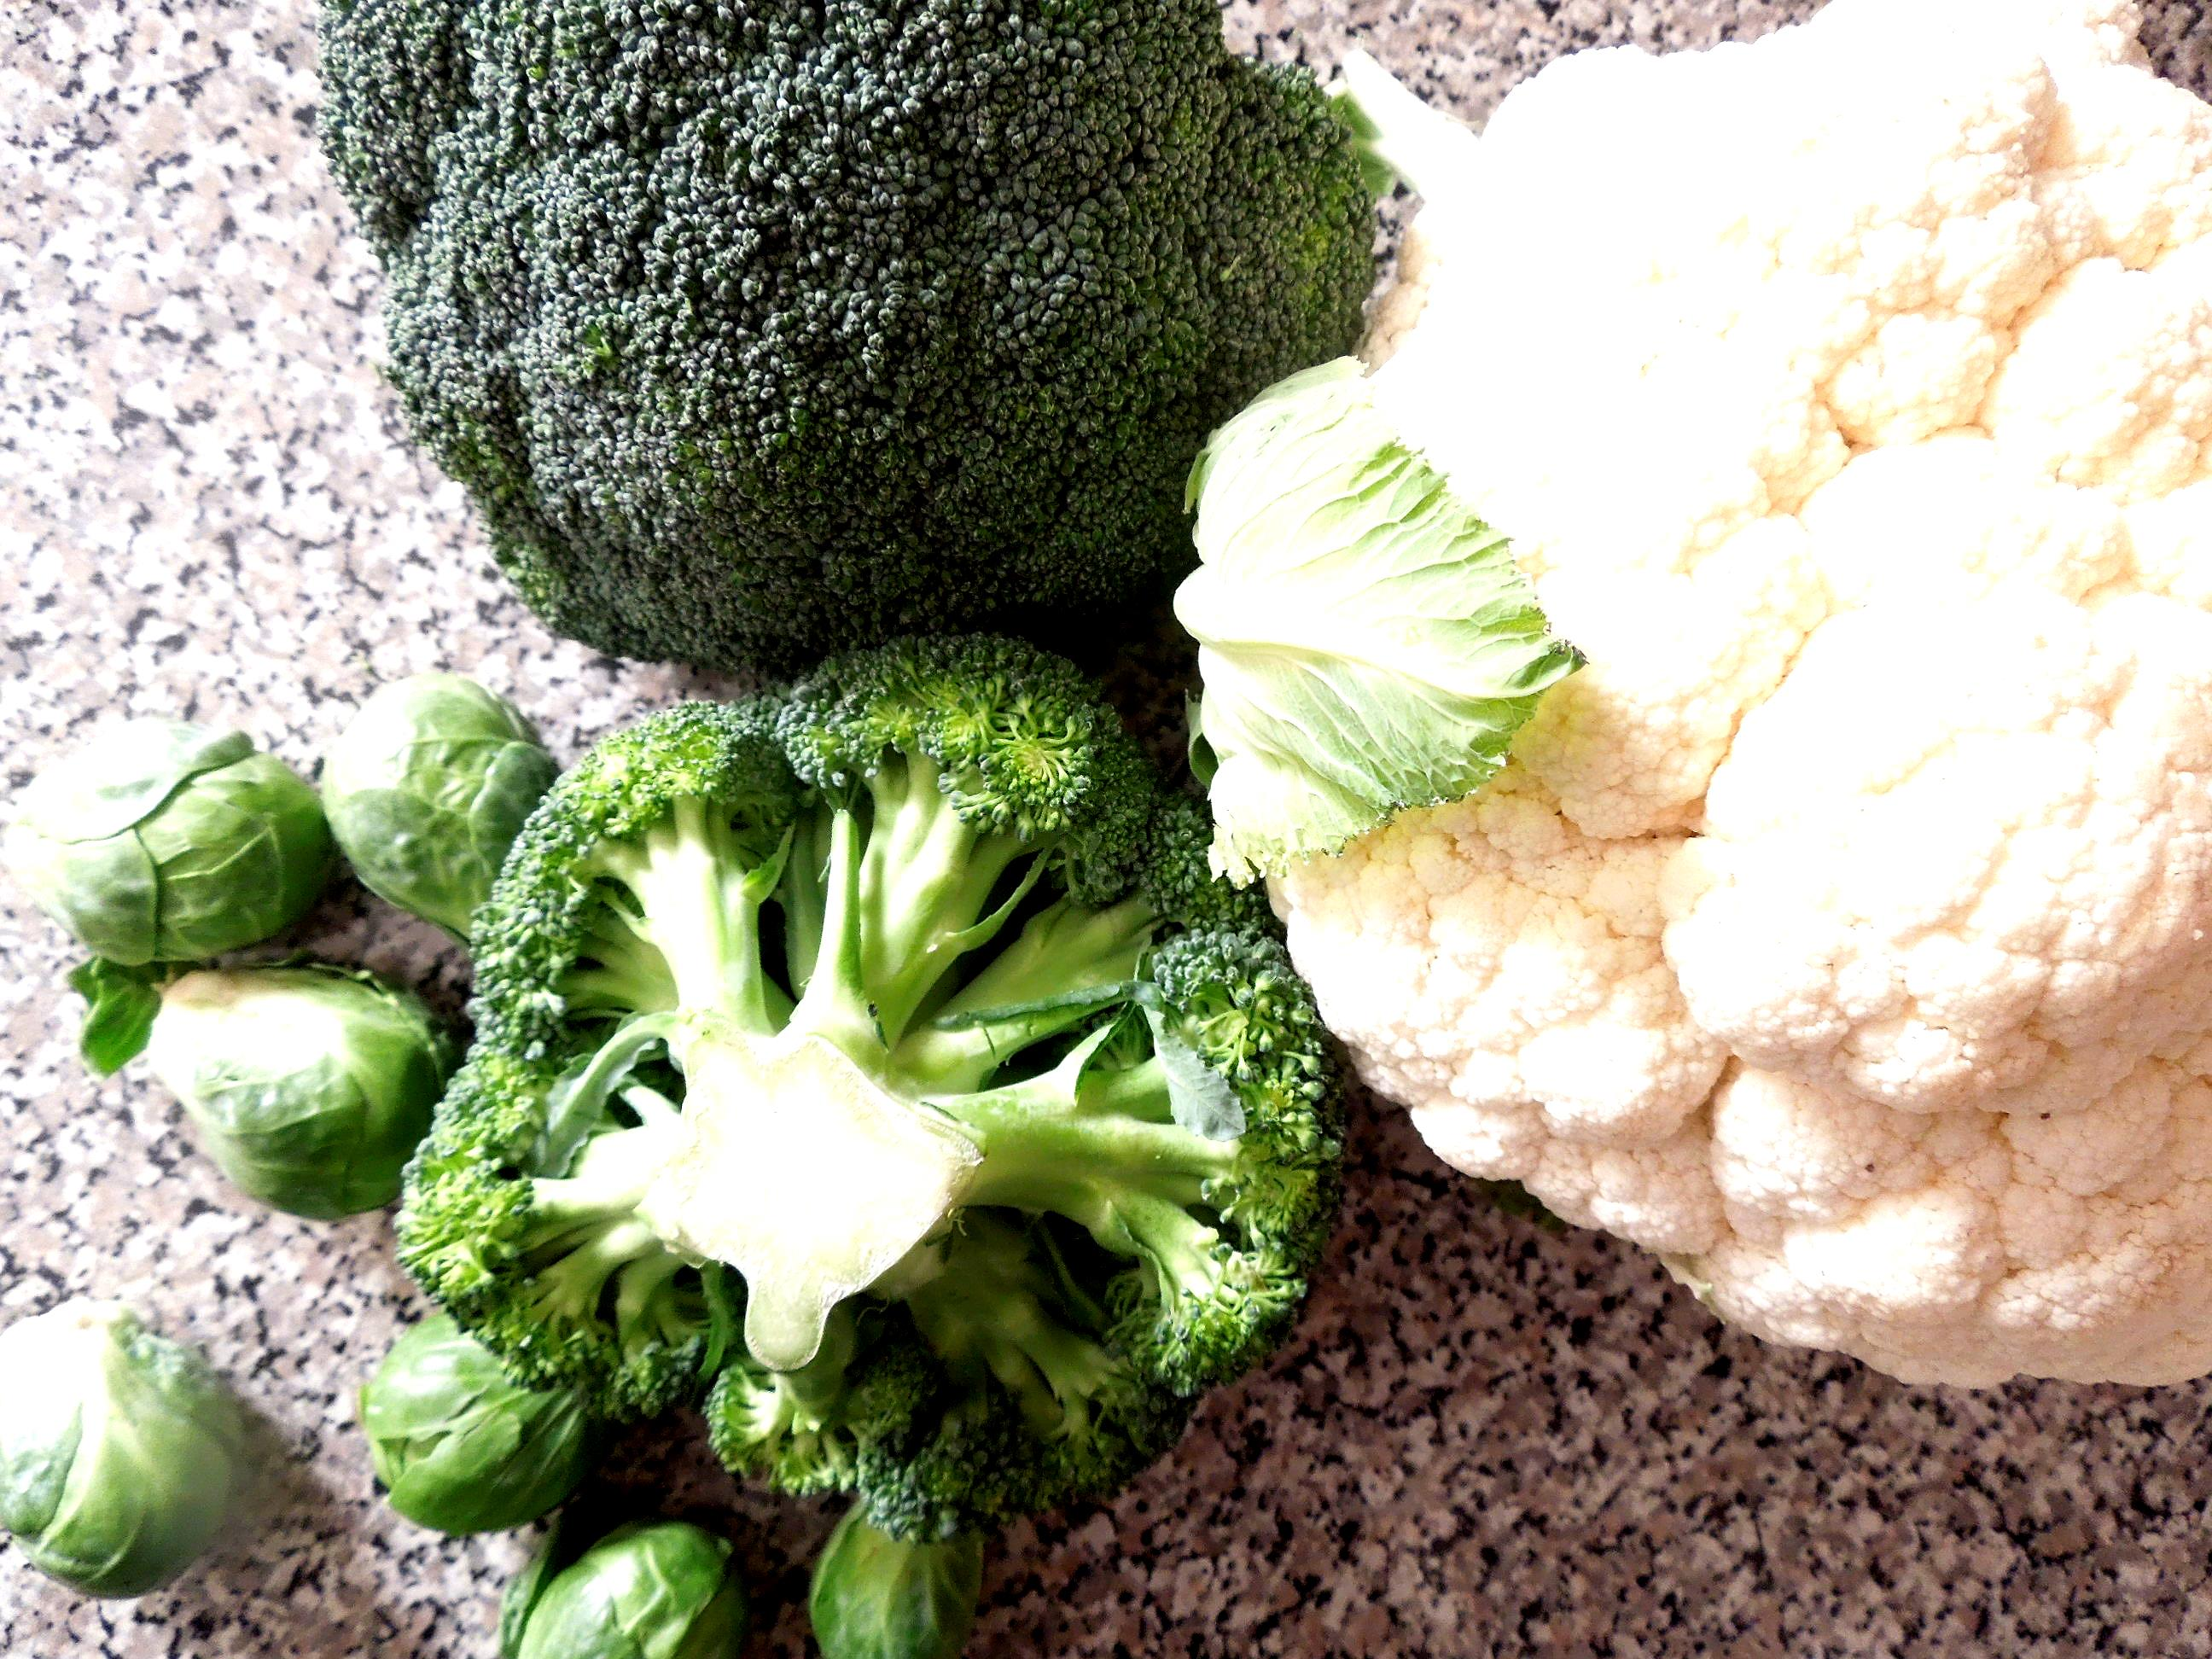 Broccoli, cauliflower, Brussels sprouts, cruciferous